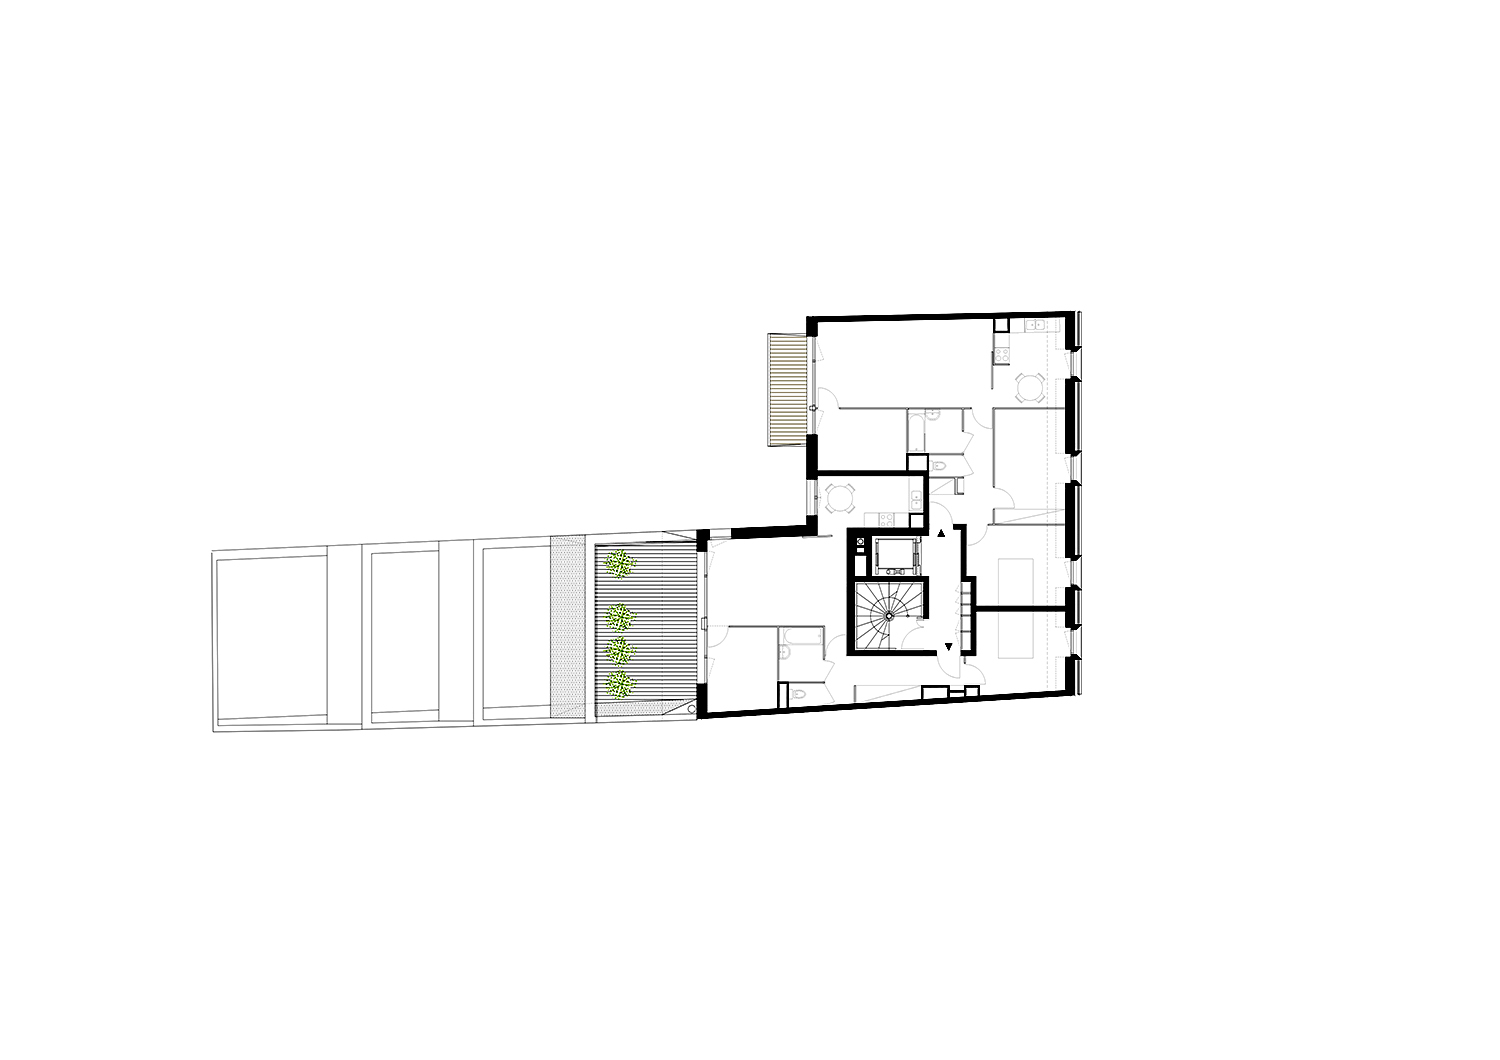 Fifth floor plan }